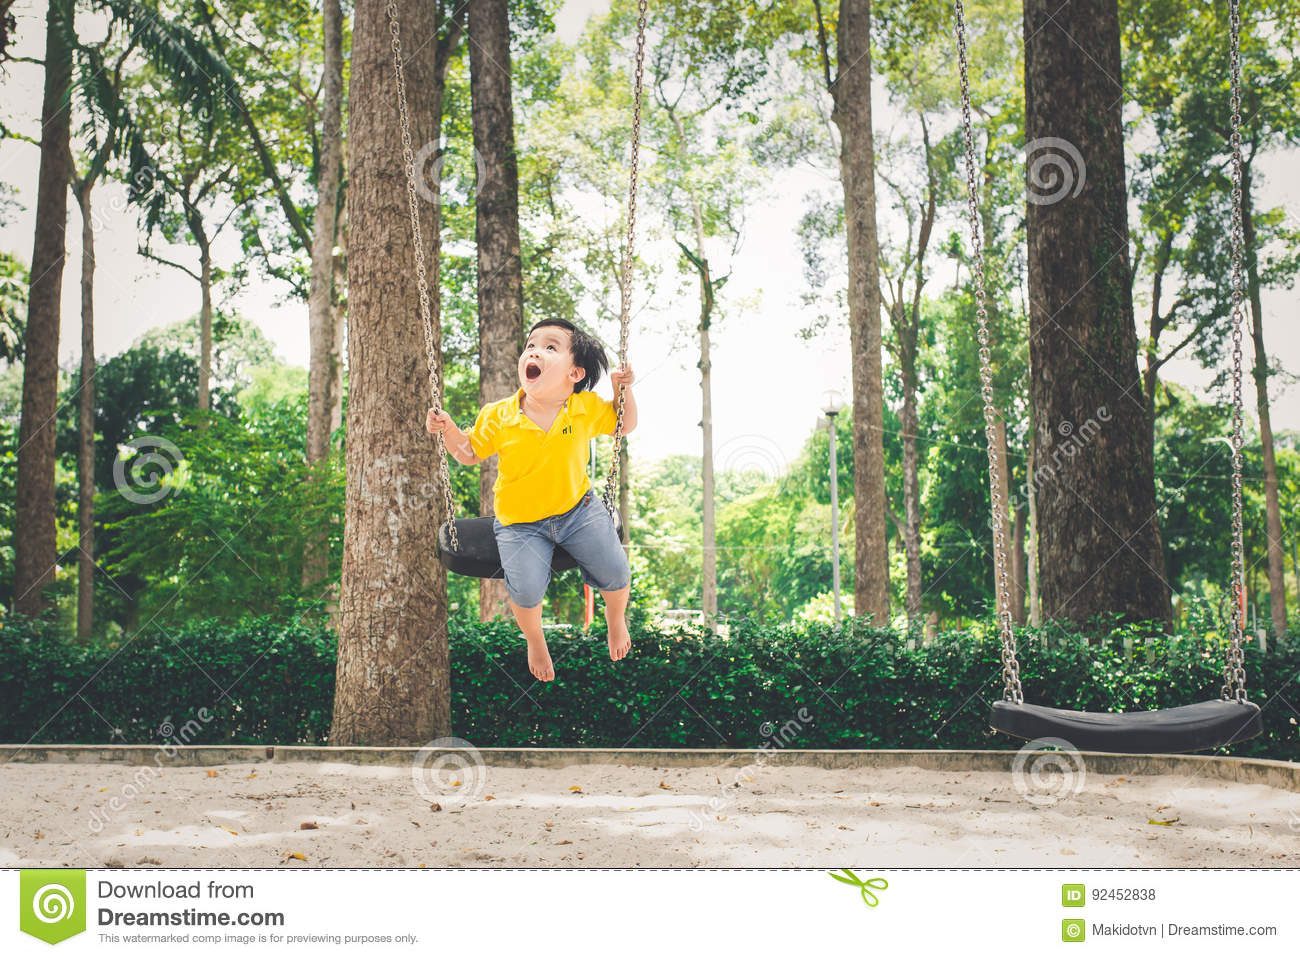 Cute little asian boy in a park on a nice day outdoors